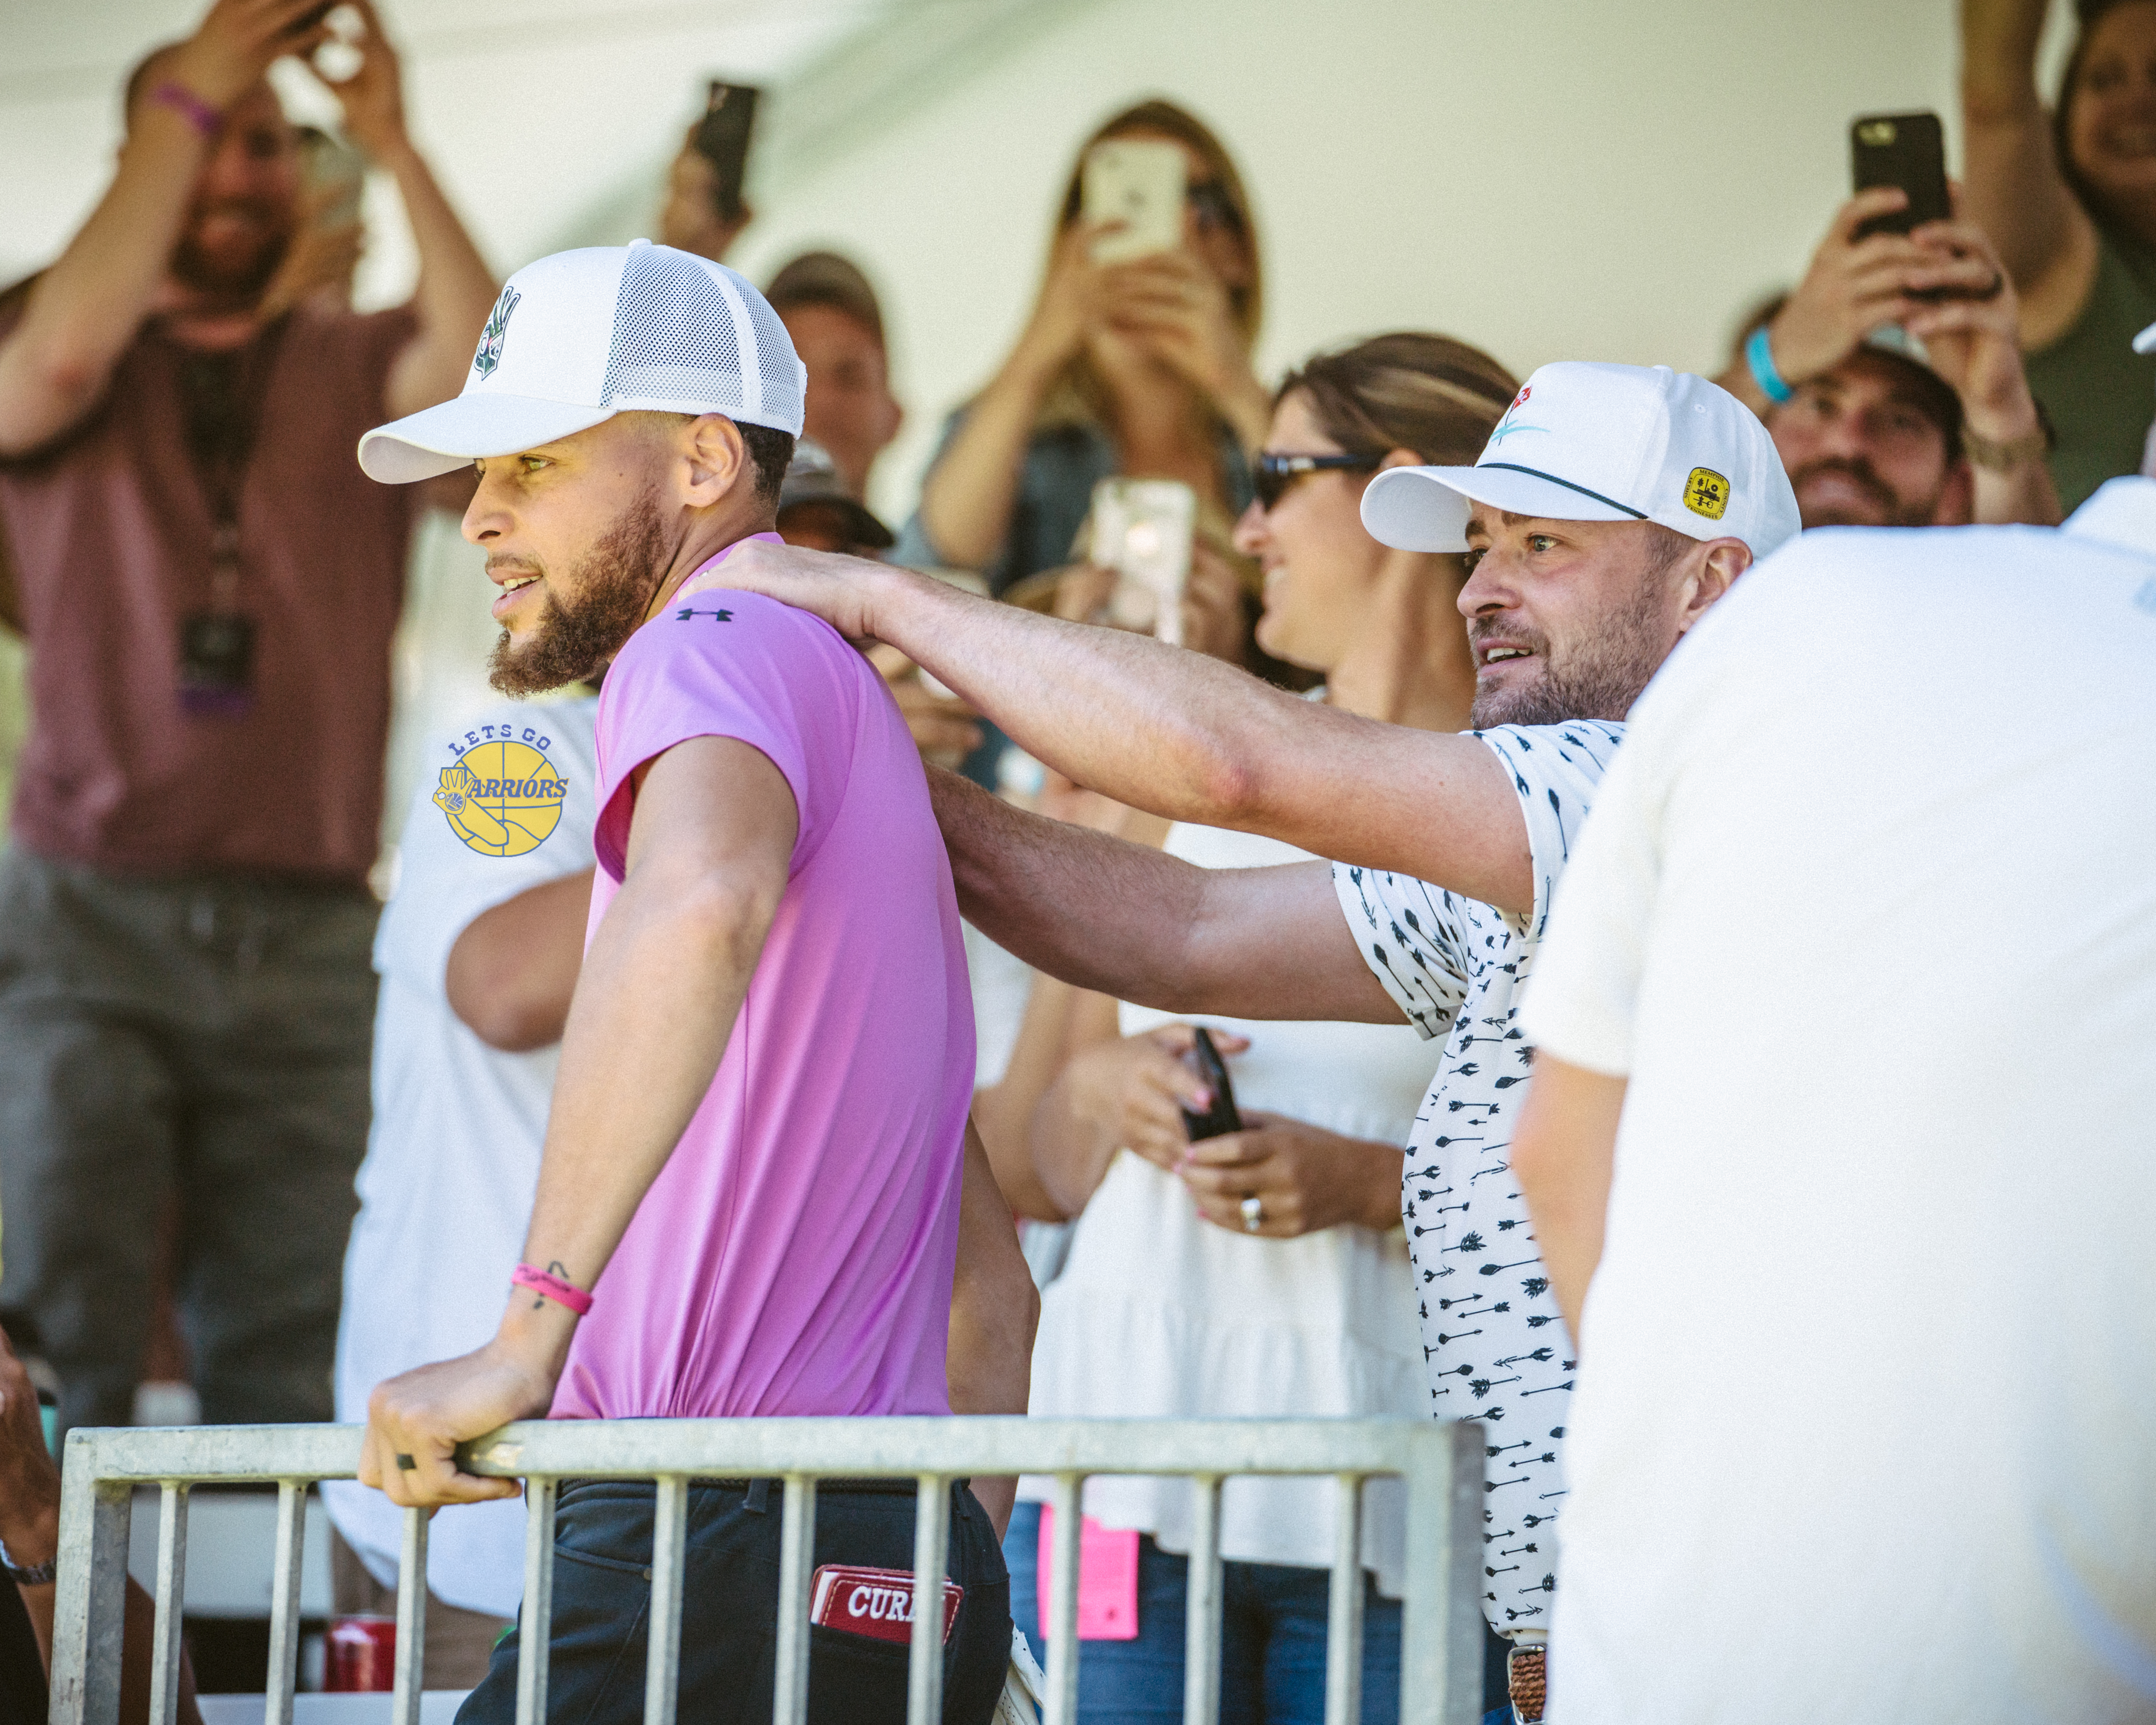 [PHOTO GALLERY] Steph Curry, Justin Timberlake, Aaron Rodgers at Edgewood Tahoe American Century Championship - Round 2 Back 9